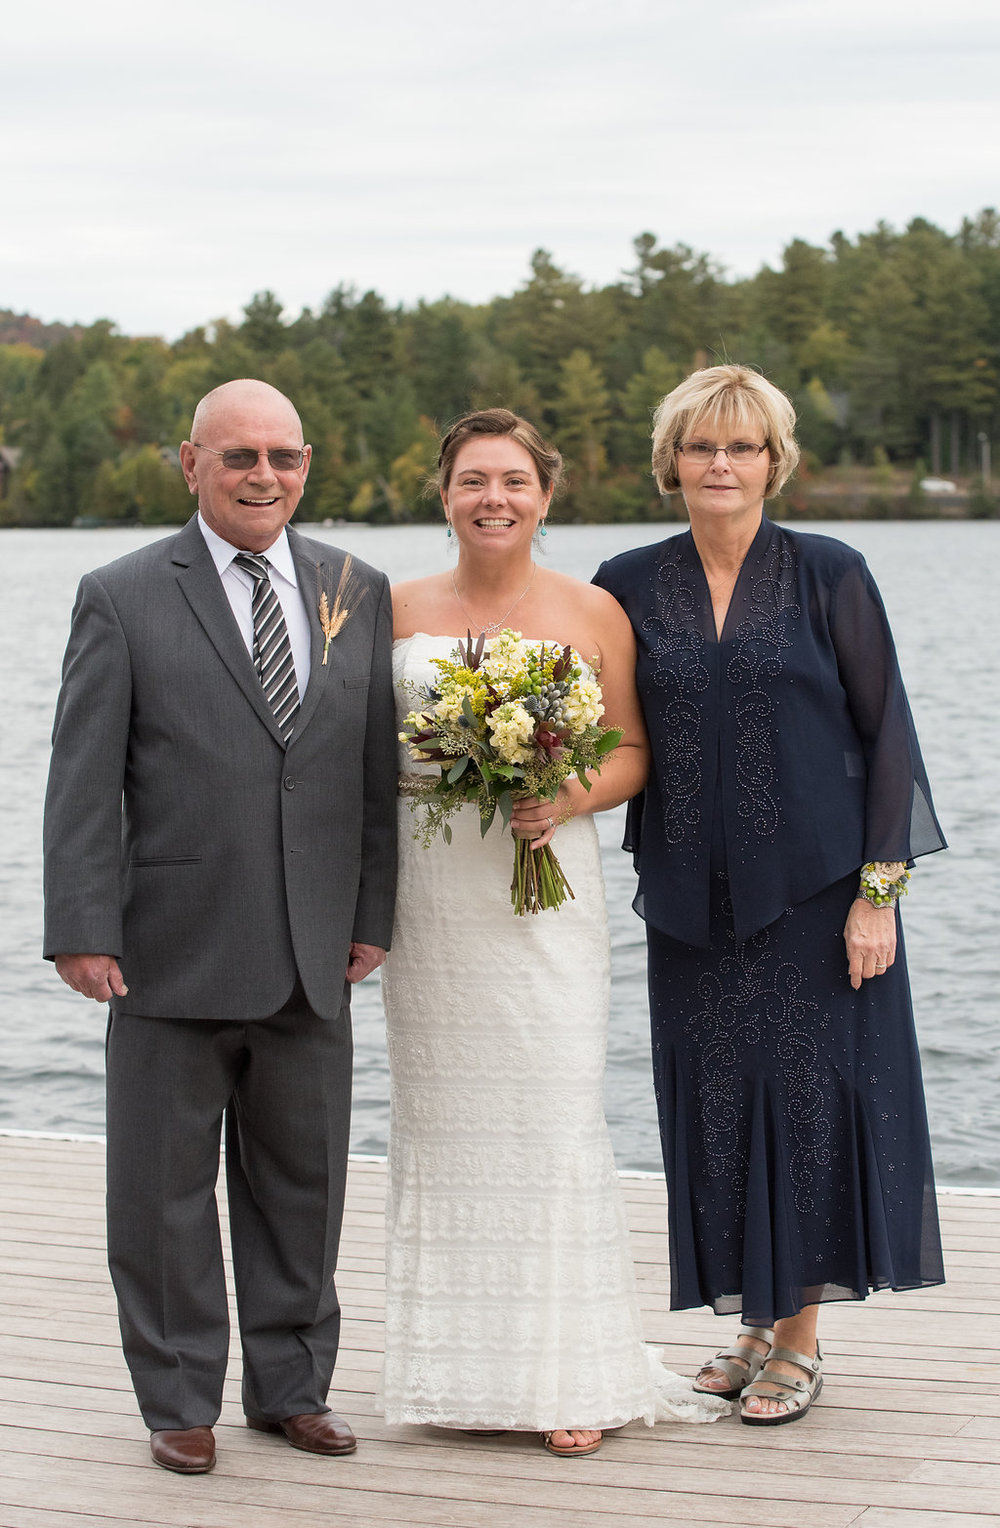 bride-fromal-photos-grandparents-golden-arrow-lakeside-resort-lake-placid-ny-wedding-ym-photography